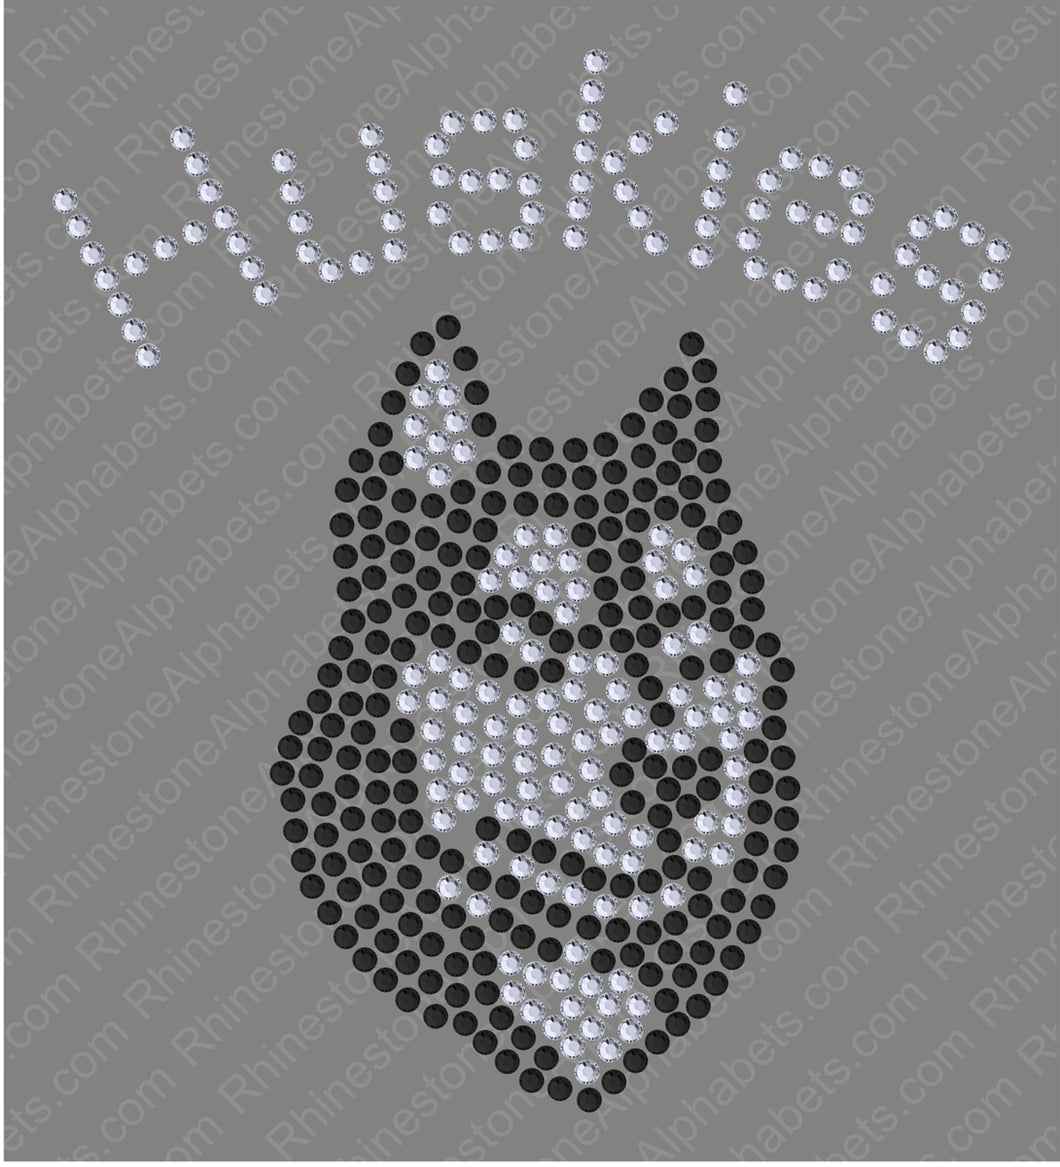 Tiny Huskies ,TTF Rhinestone Fonts & Rhinestone Designs